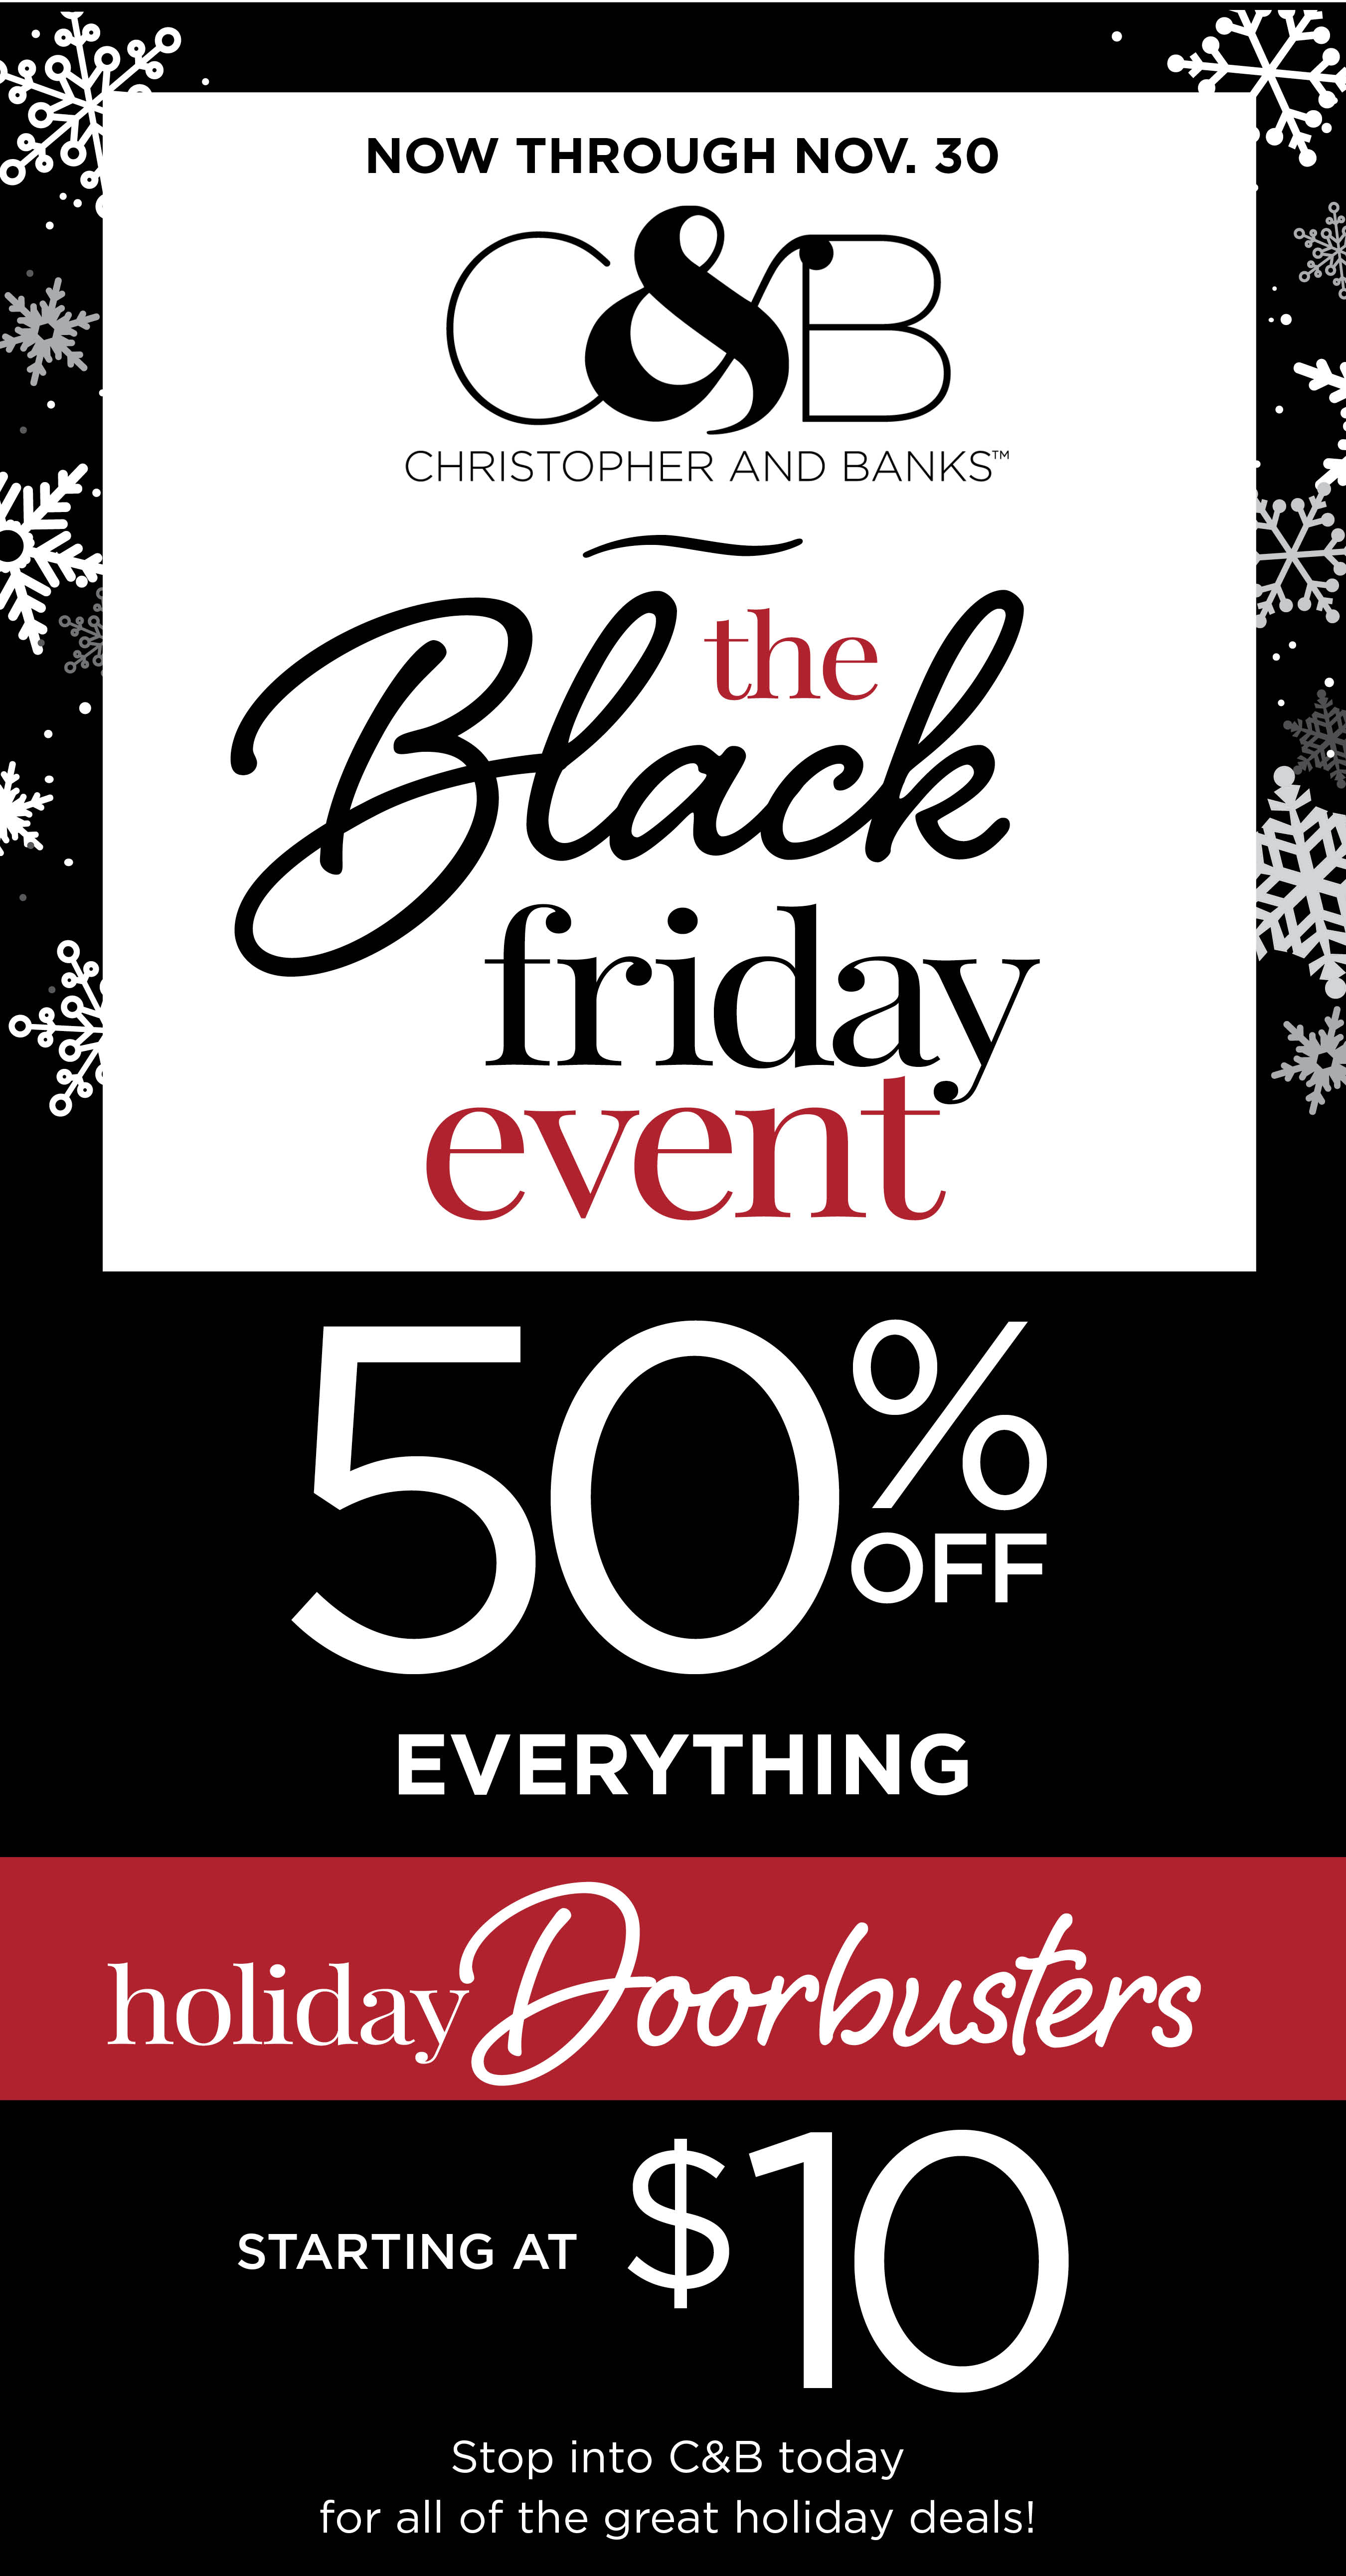 Black Friday Event from C&B Christopher and Banks